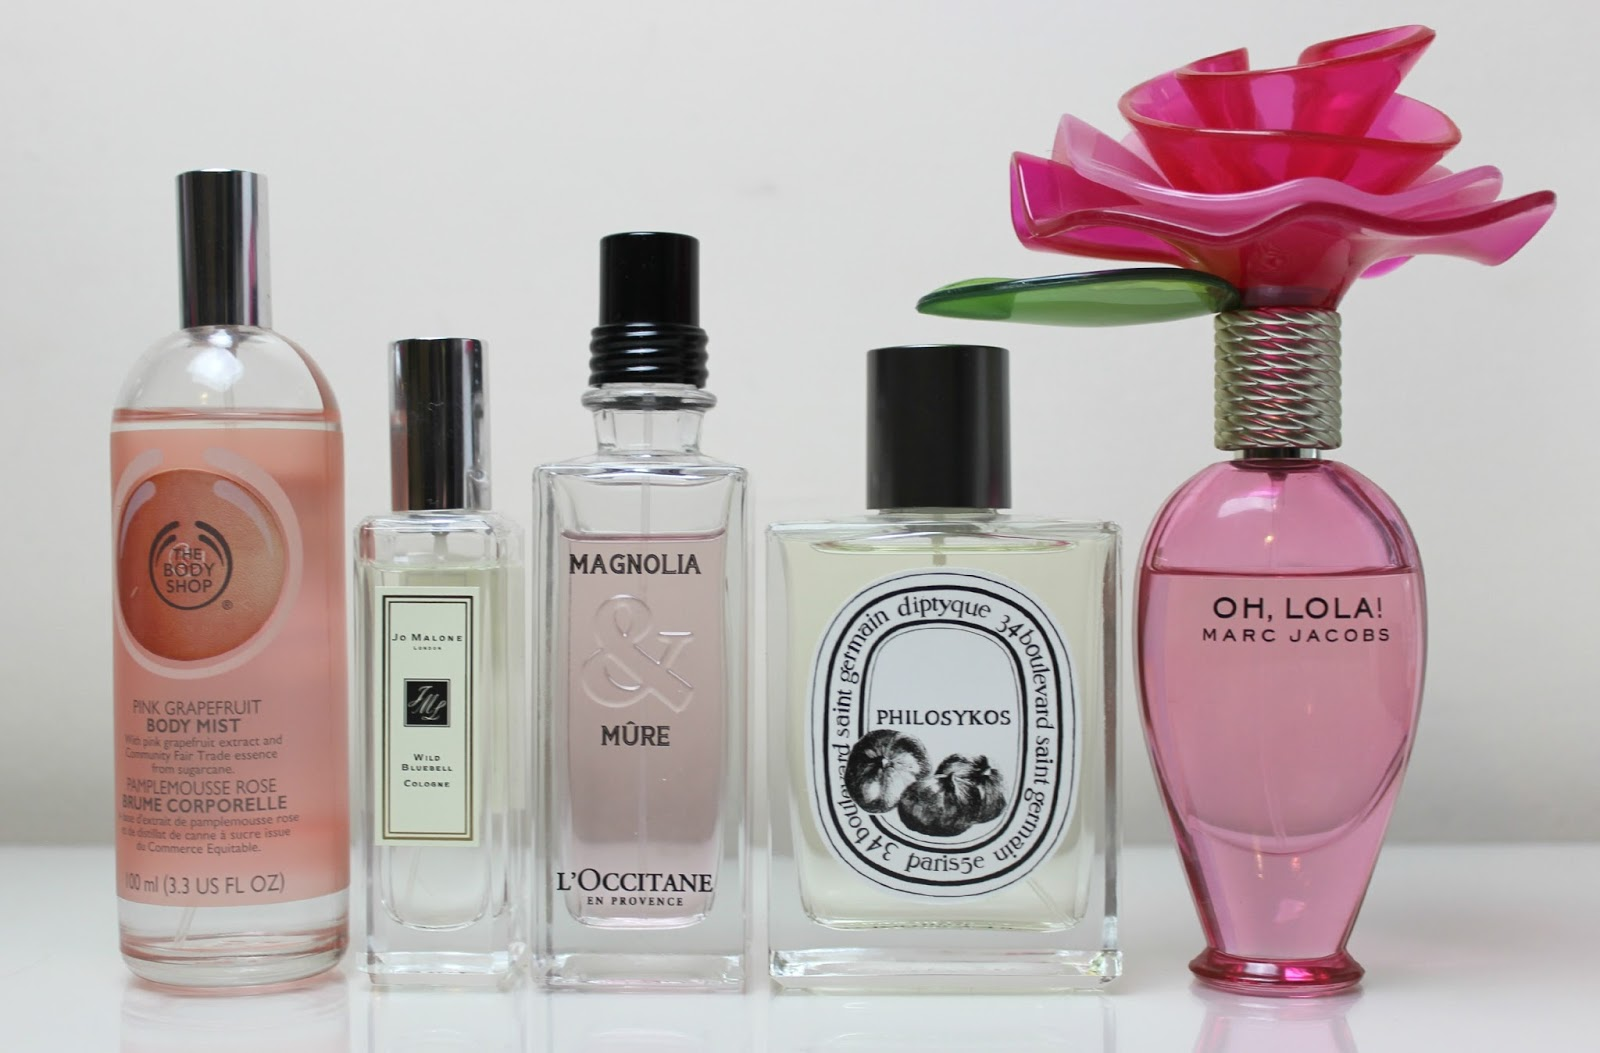 A picture of The Body Shop Pink Grapefruit Body Mist, Jo Malone Wild Bluebell, L'Occitane Magnolia & Mure, Diptyque Philosykos and Marc Jacobs Oh Lola!